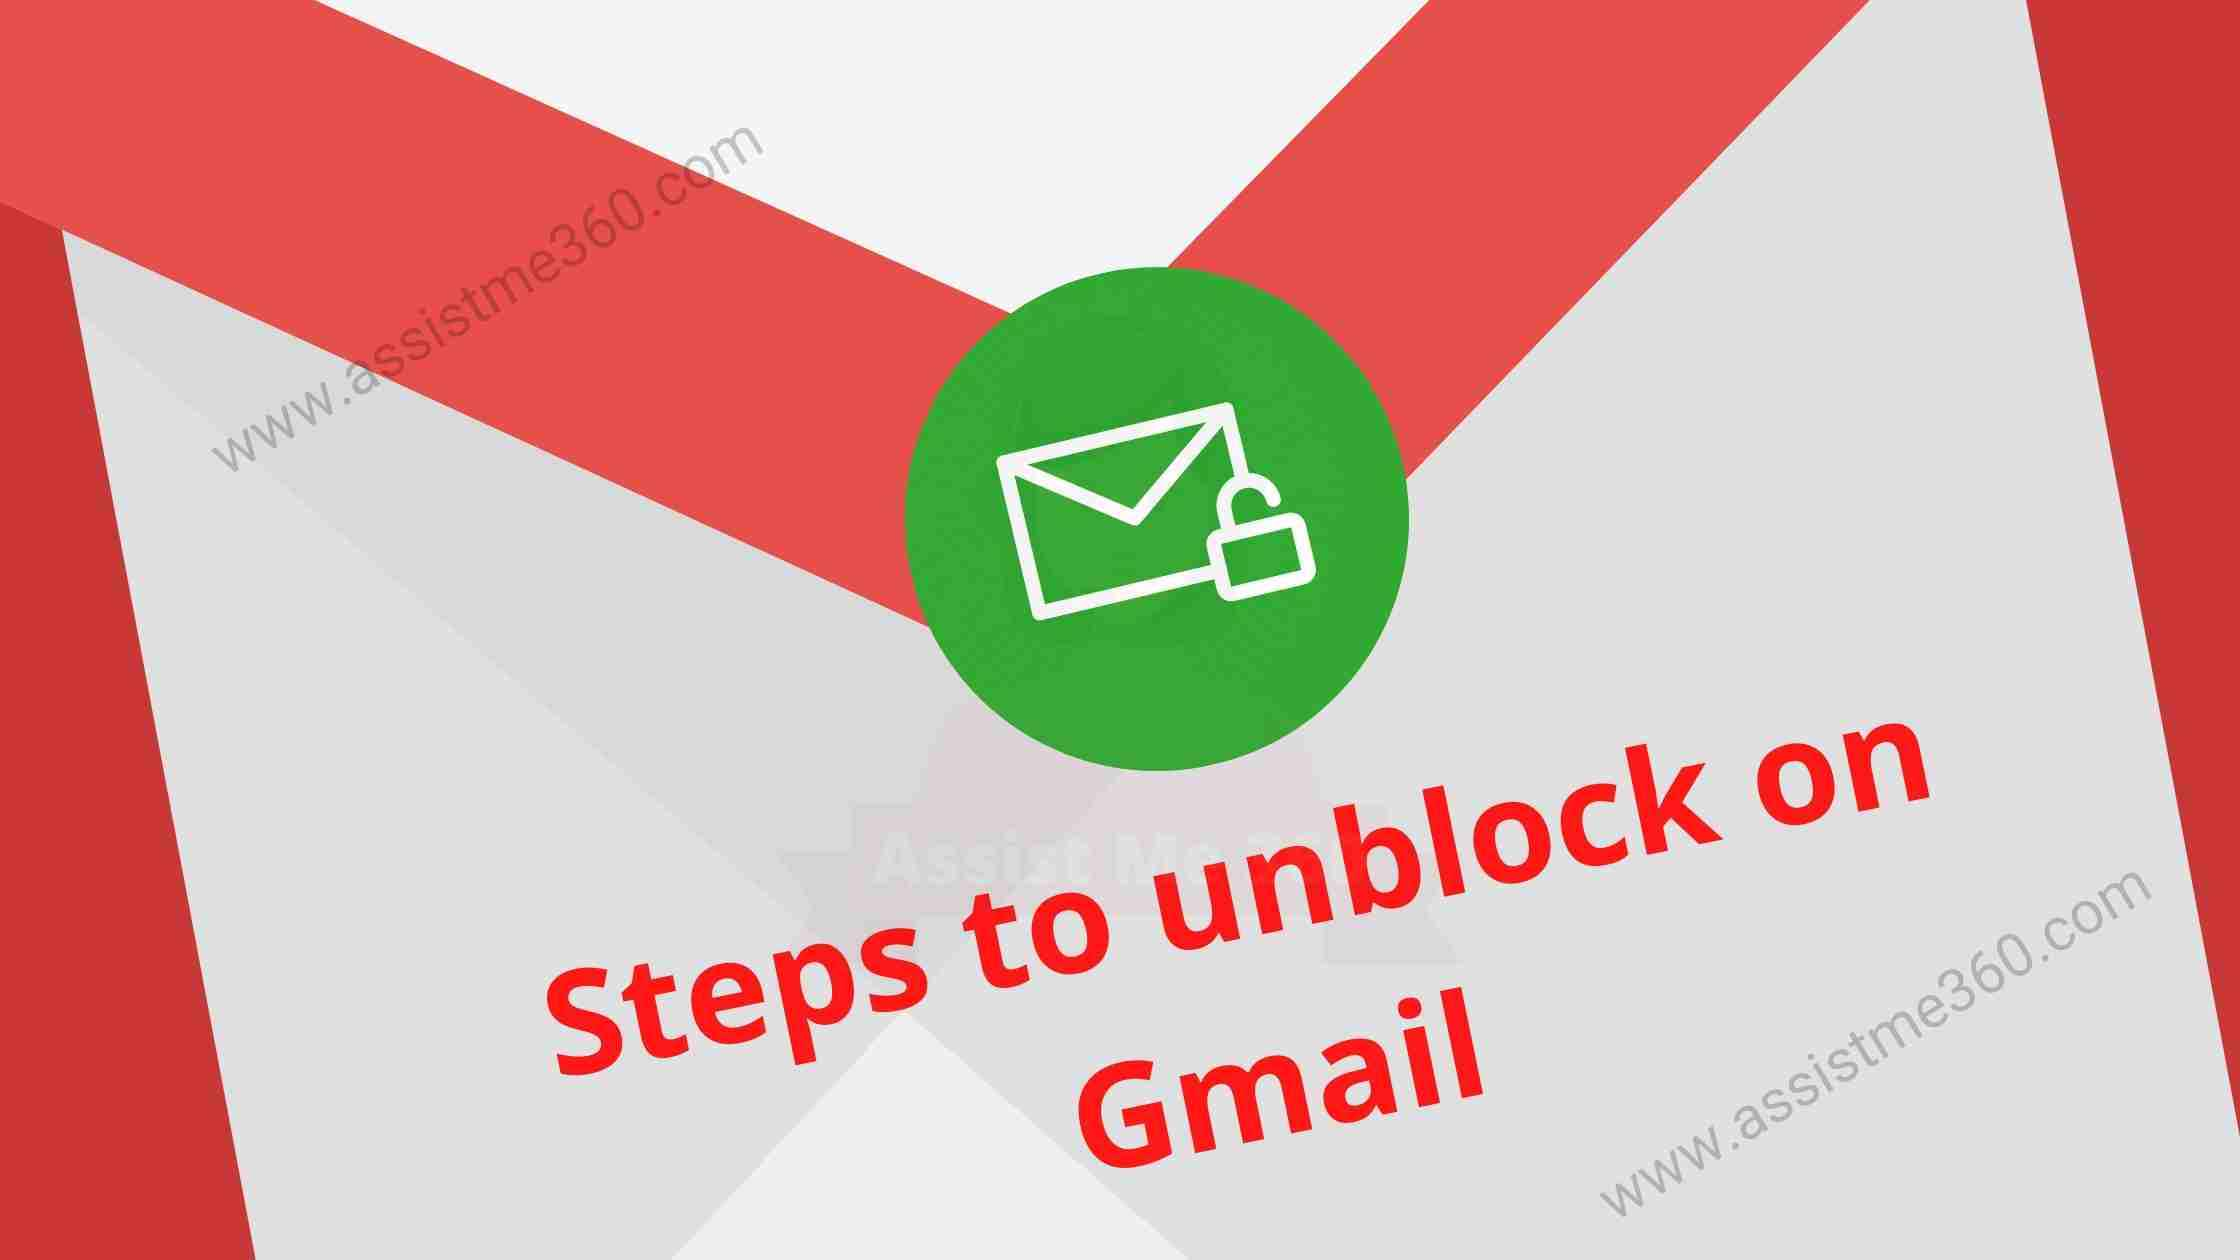 How to unblock someone on gmail (5)